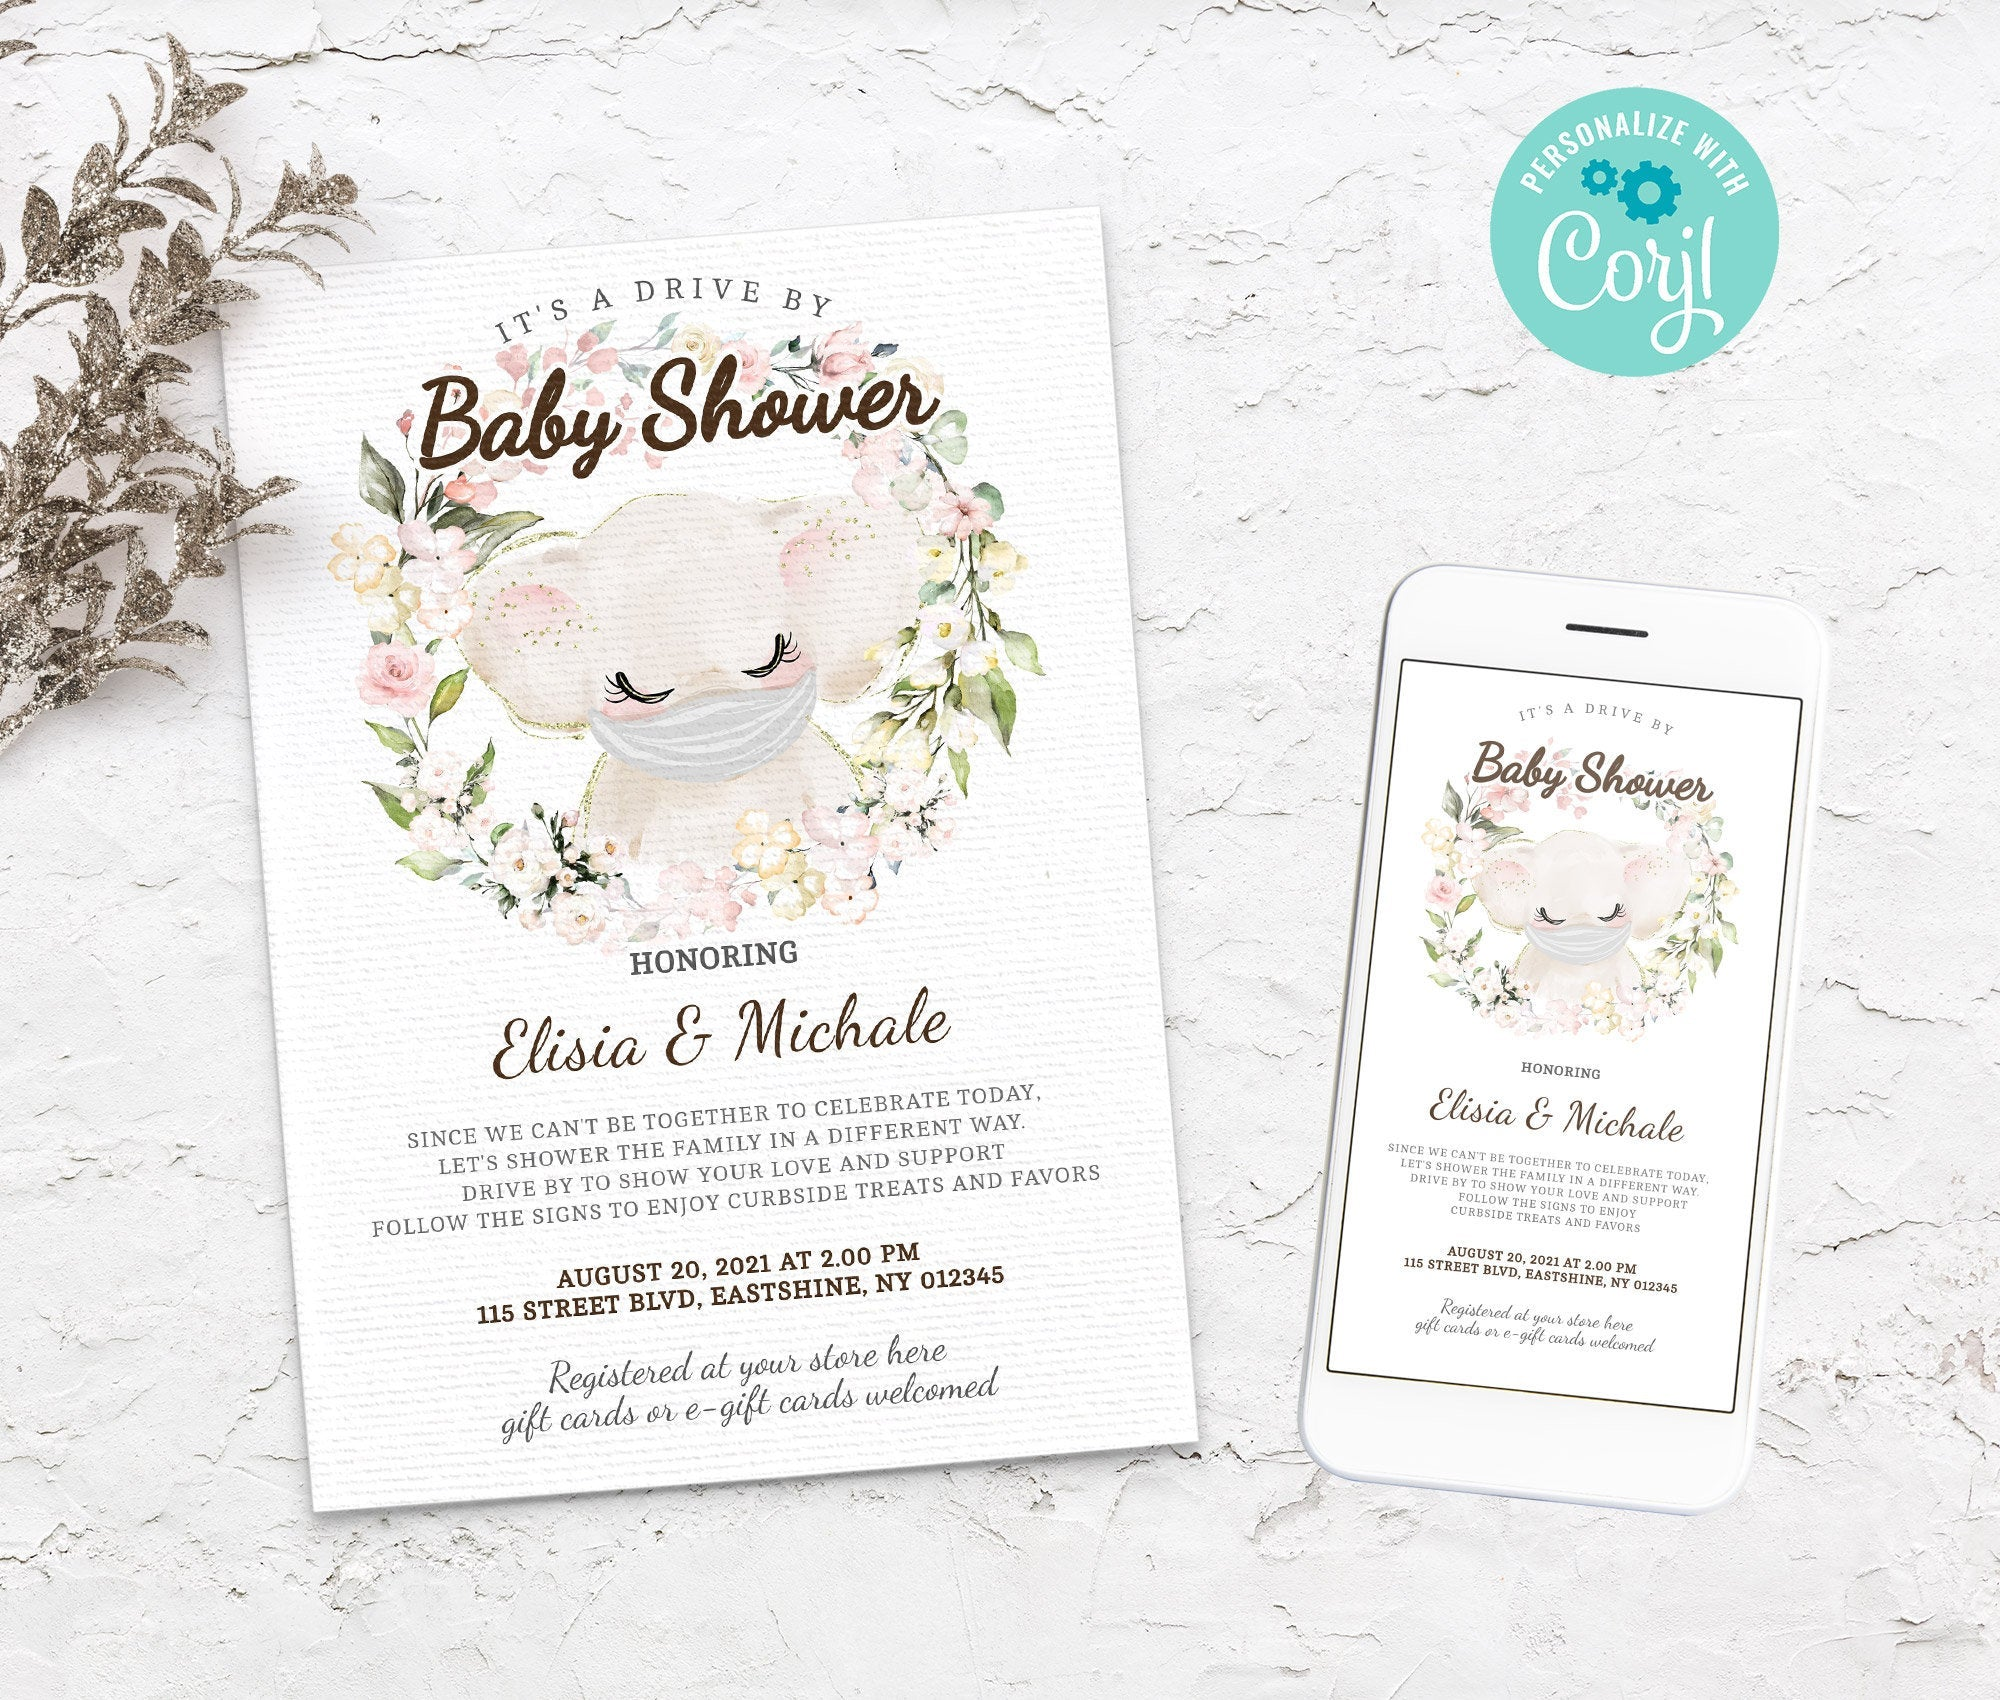 Editable Drive By Baby Shower Elephant Invitation - Animals Drive Through Baby Shower - Social Distancing Baby Shower - Instant BS3601 5